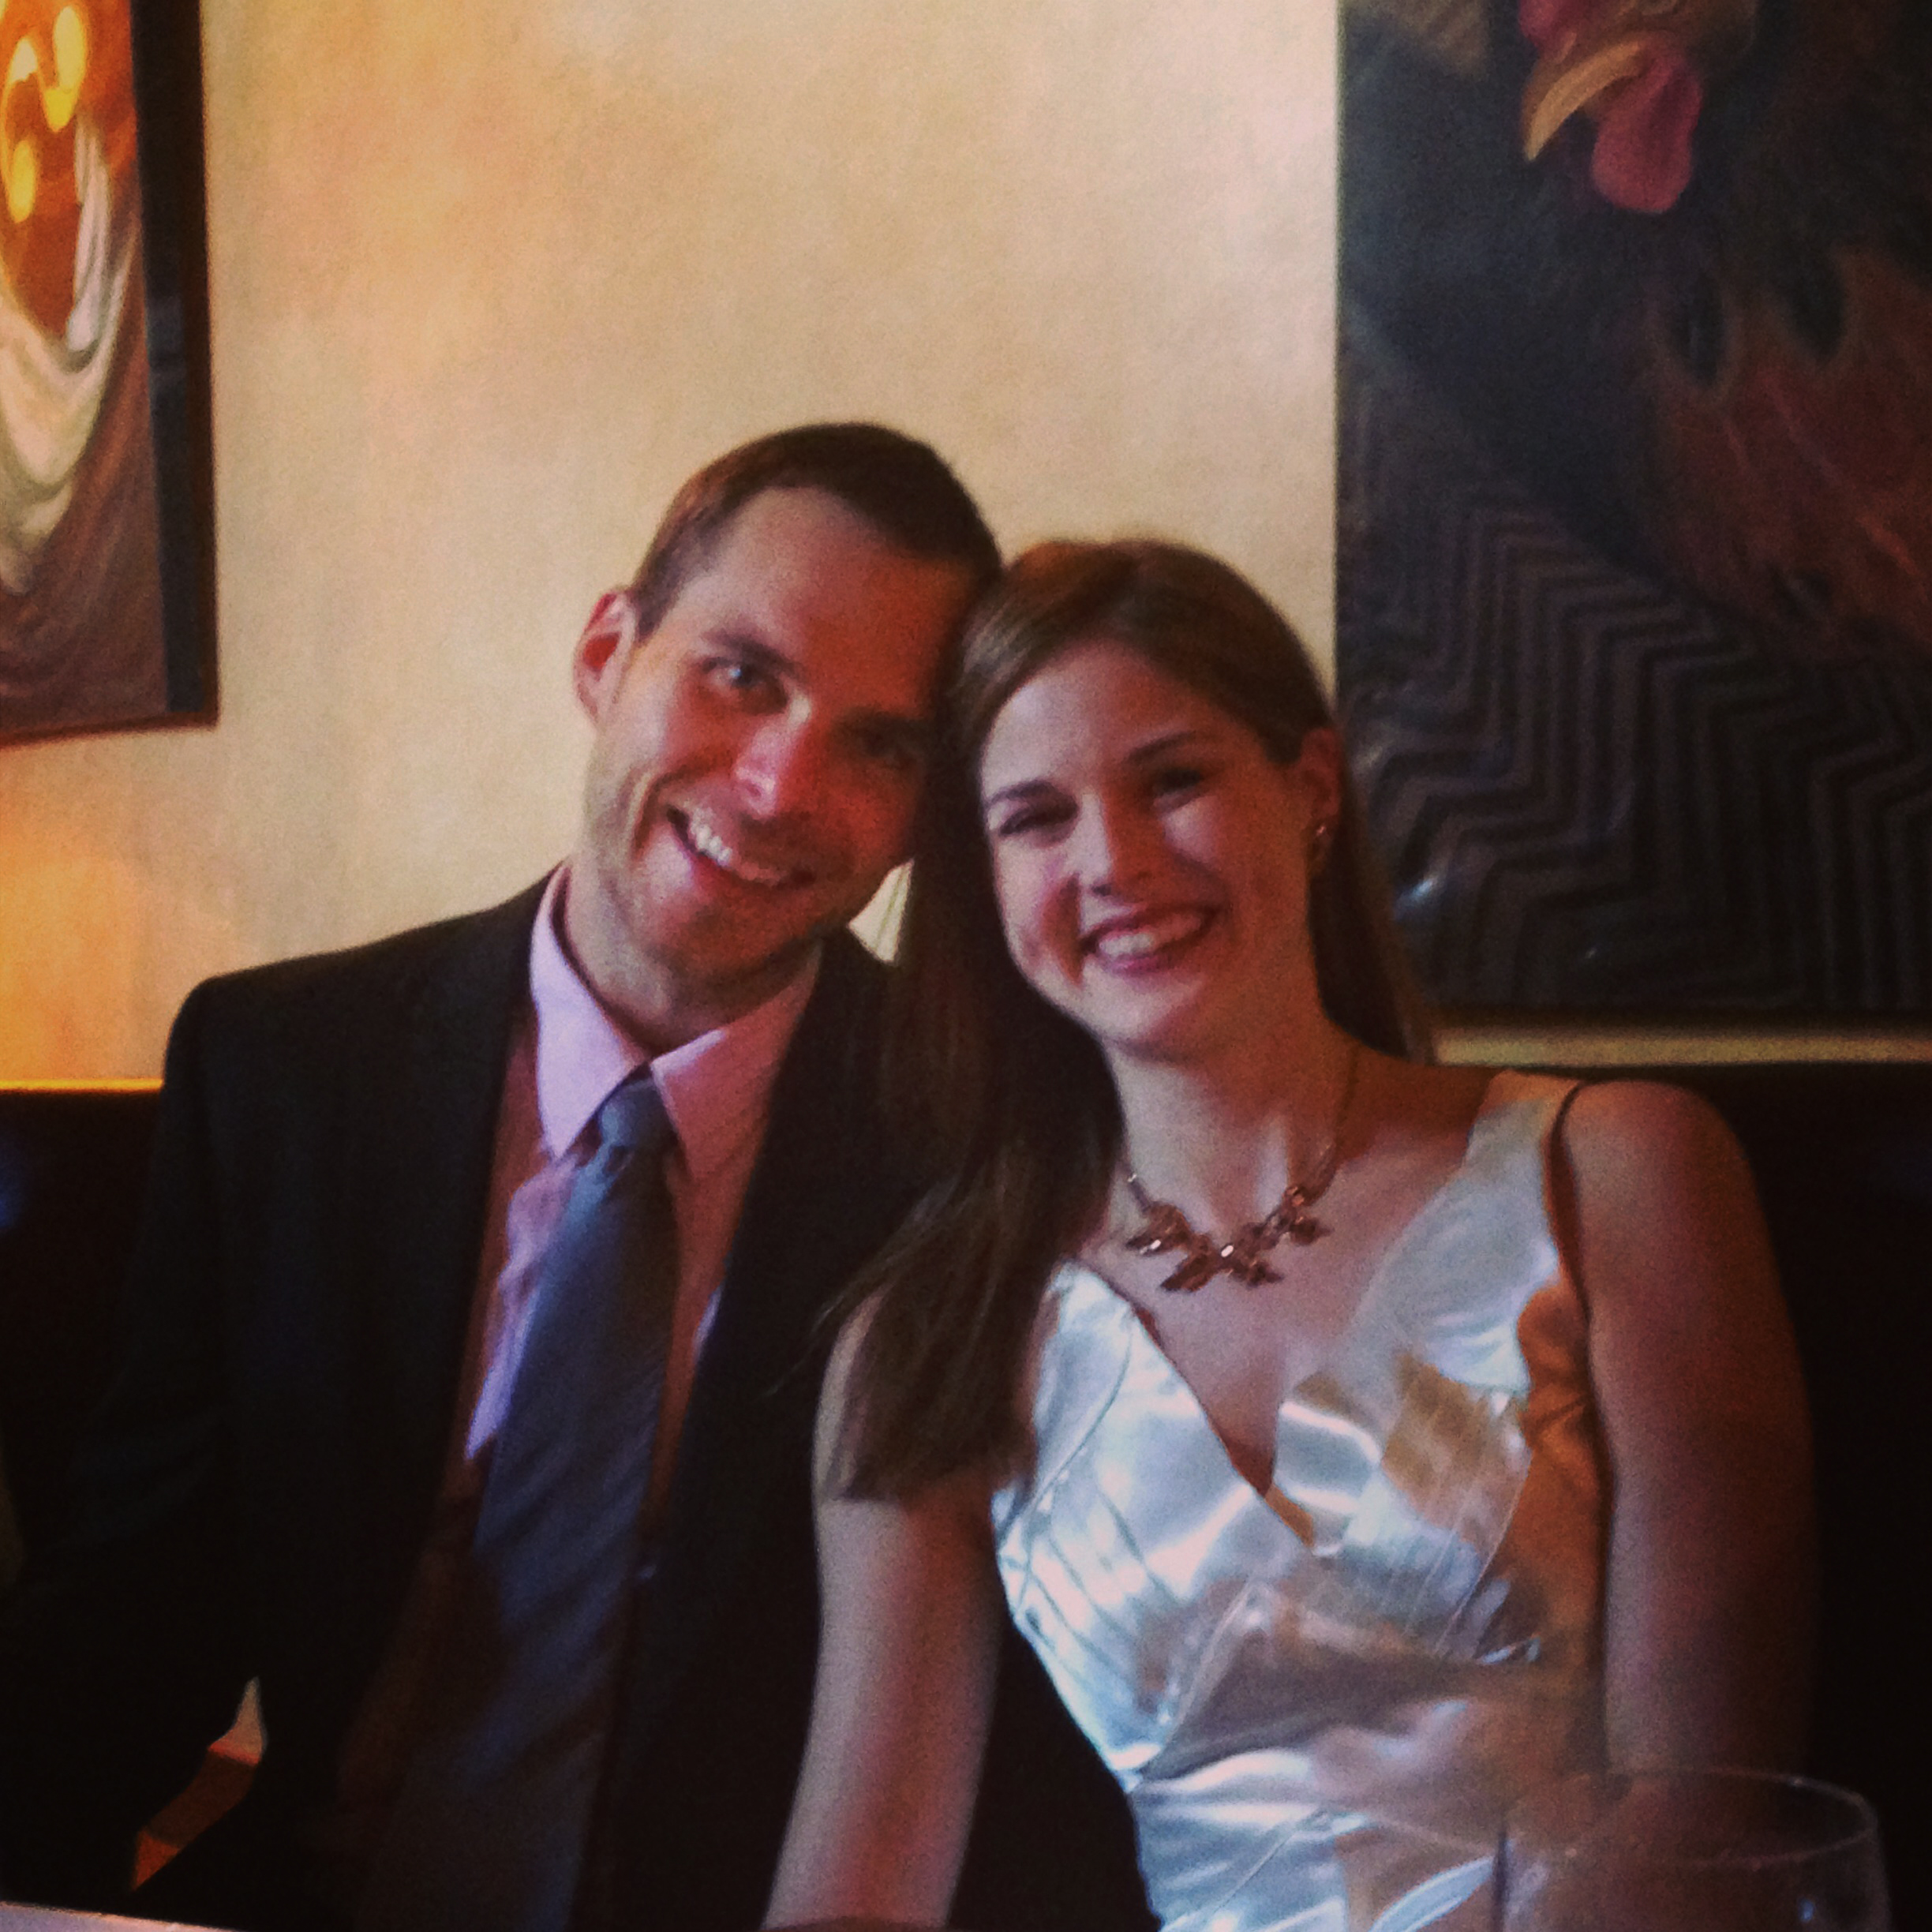 Jeremy & Charlotte at their rehearsal dinner!